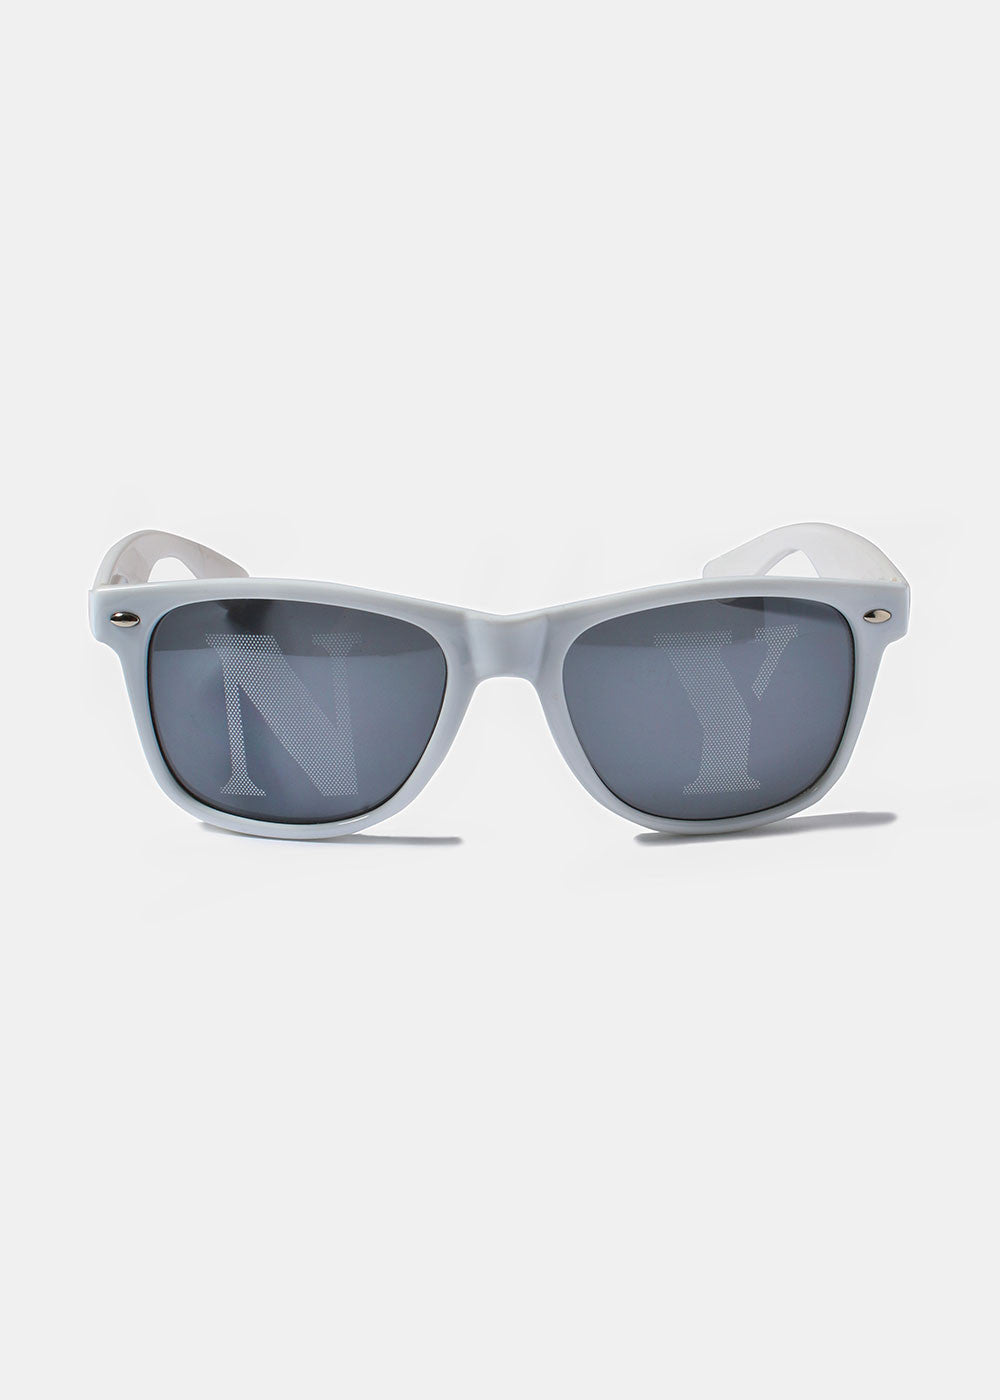 NY Square Sunglasses- White